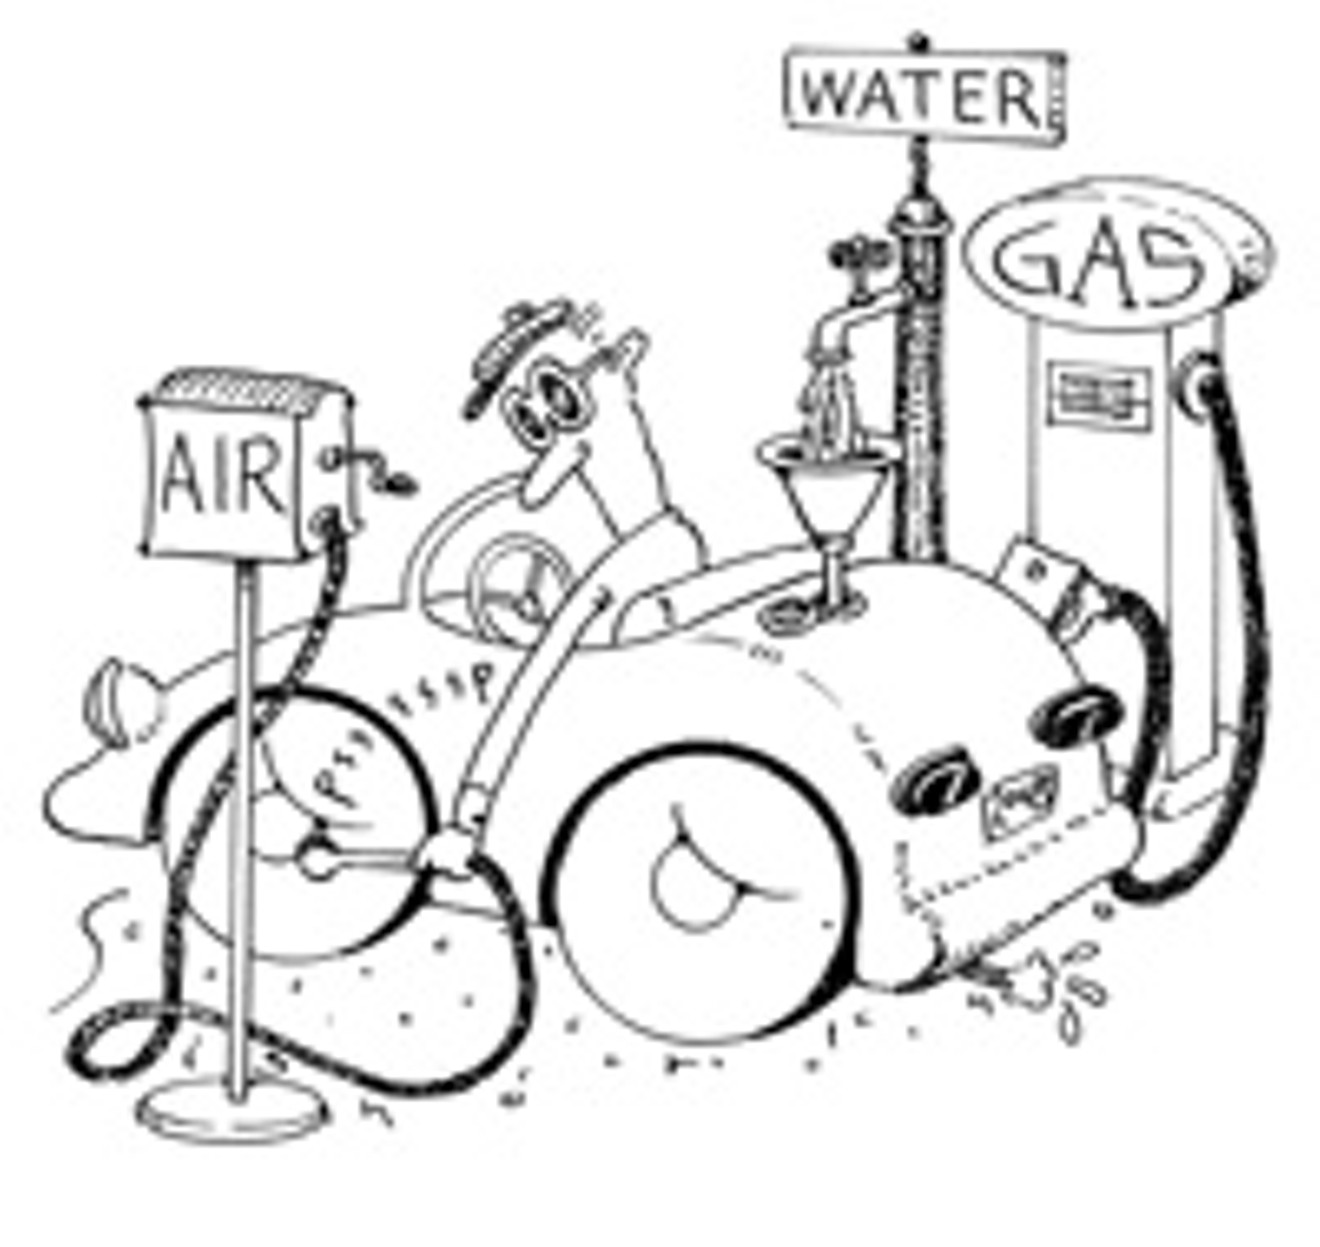 Water As Fuel Possible Or No